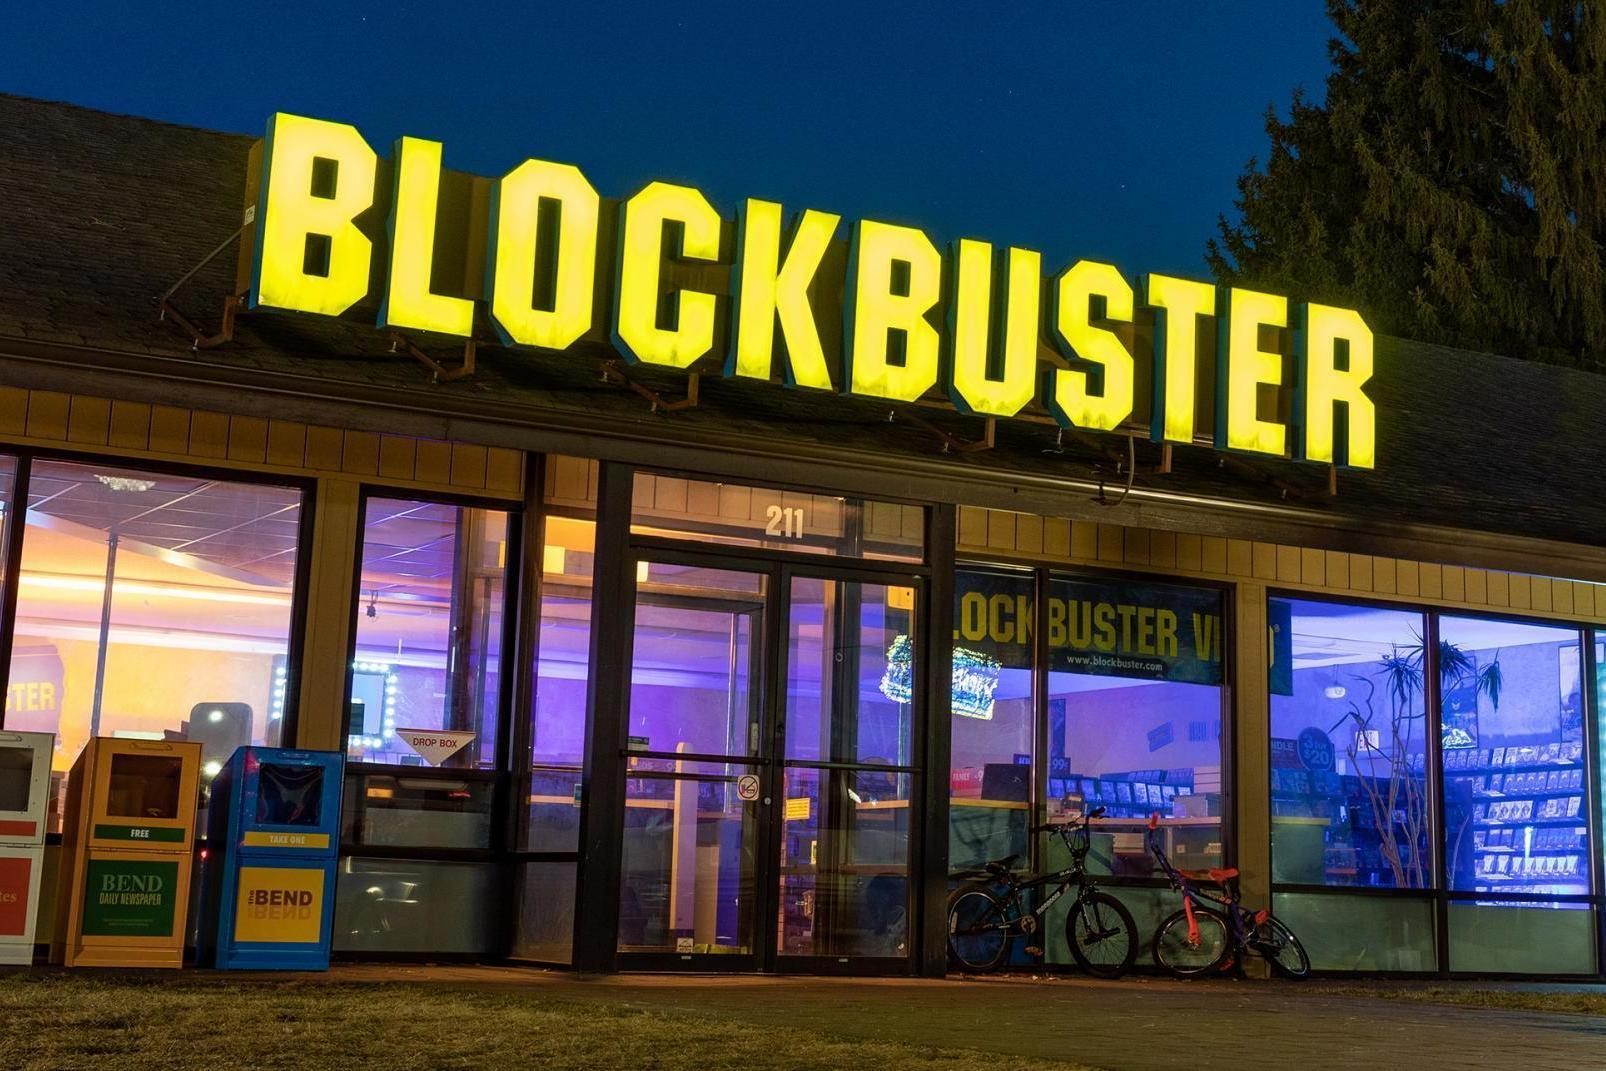 The Last Blockbuster Has Been Turned Into An Airbnb The Independent